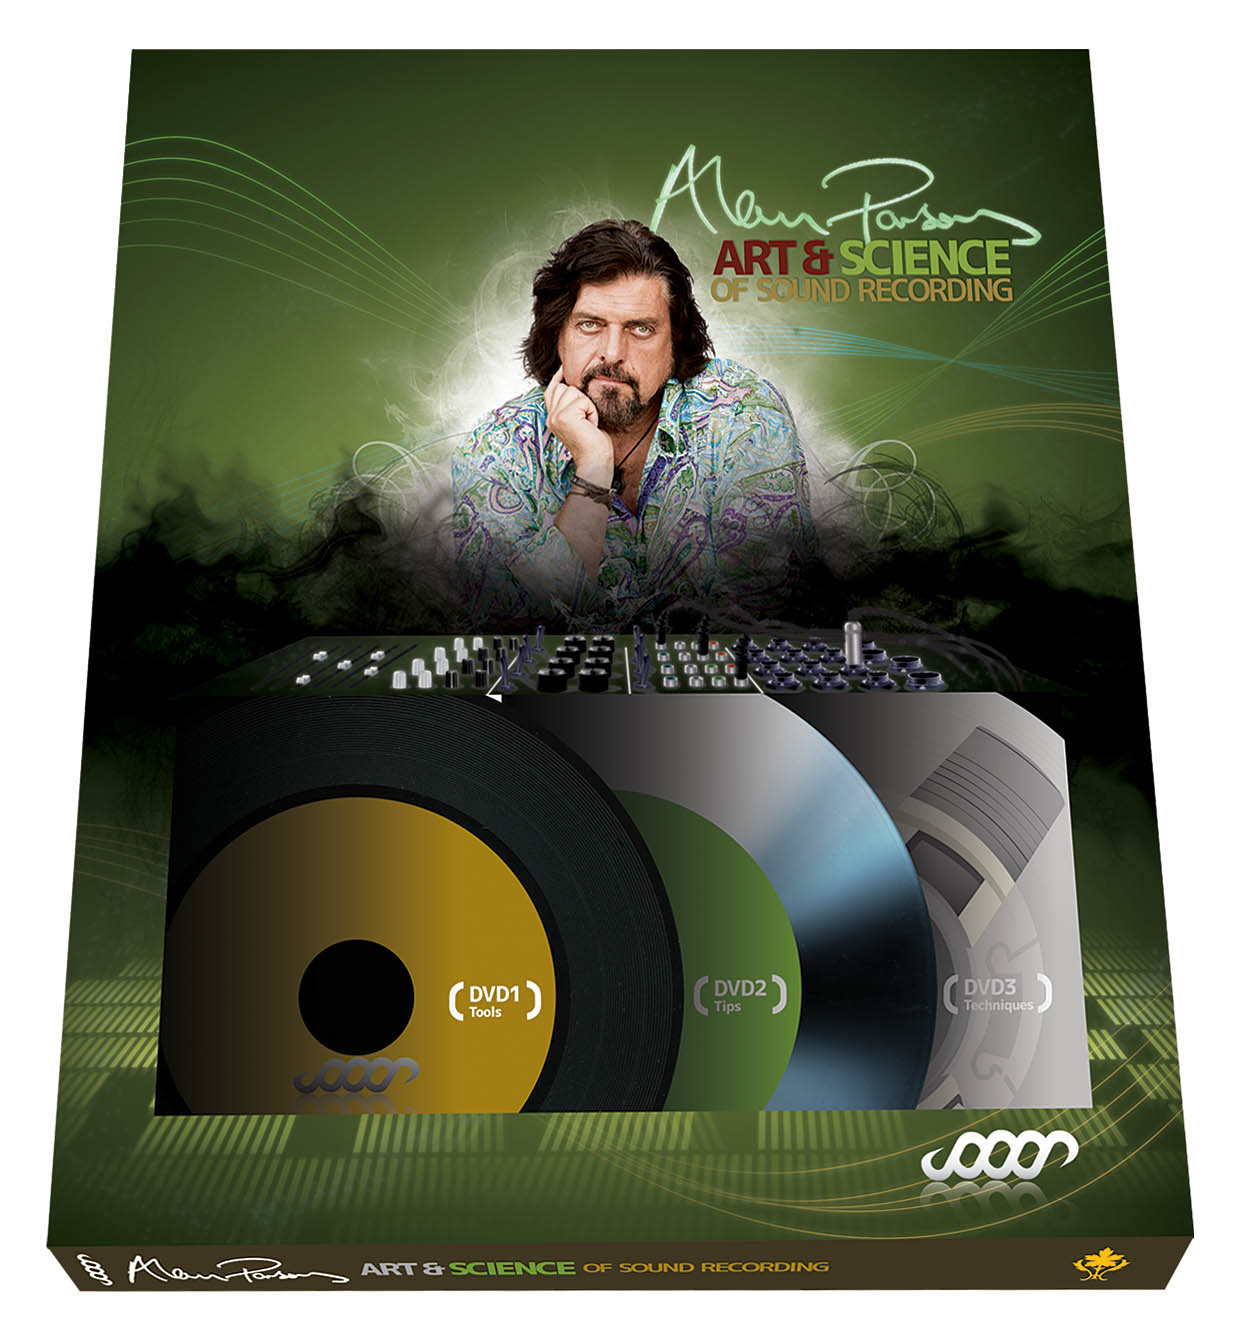 Alan Parsons' The Art & Science of Sound Recording